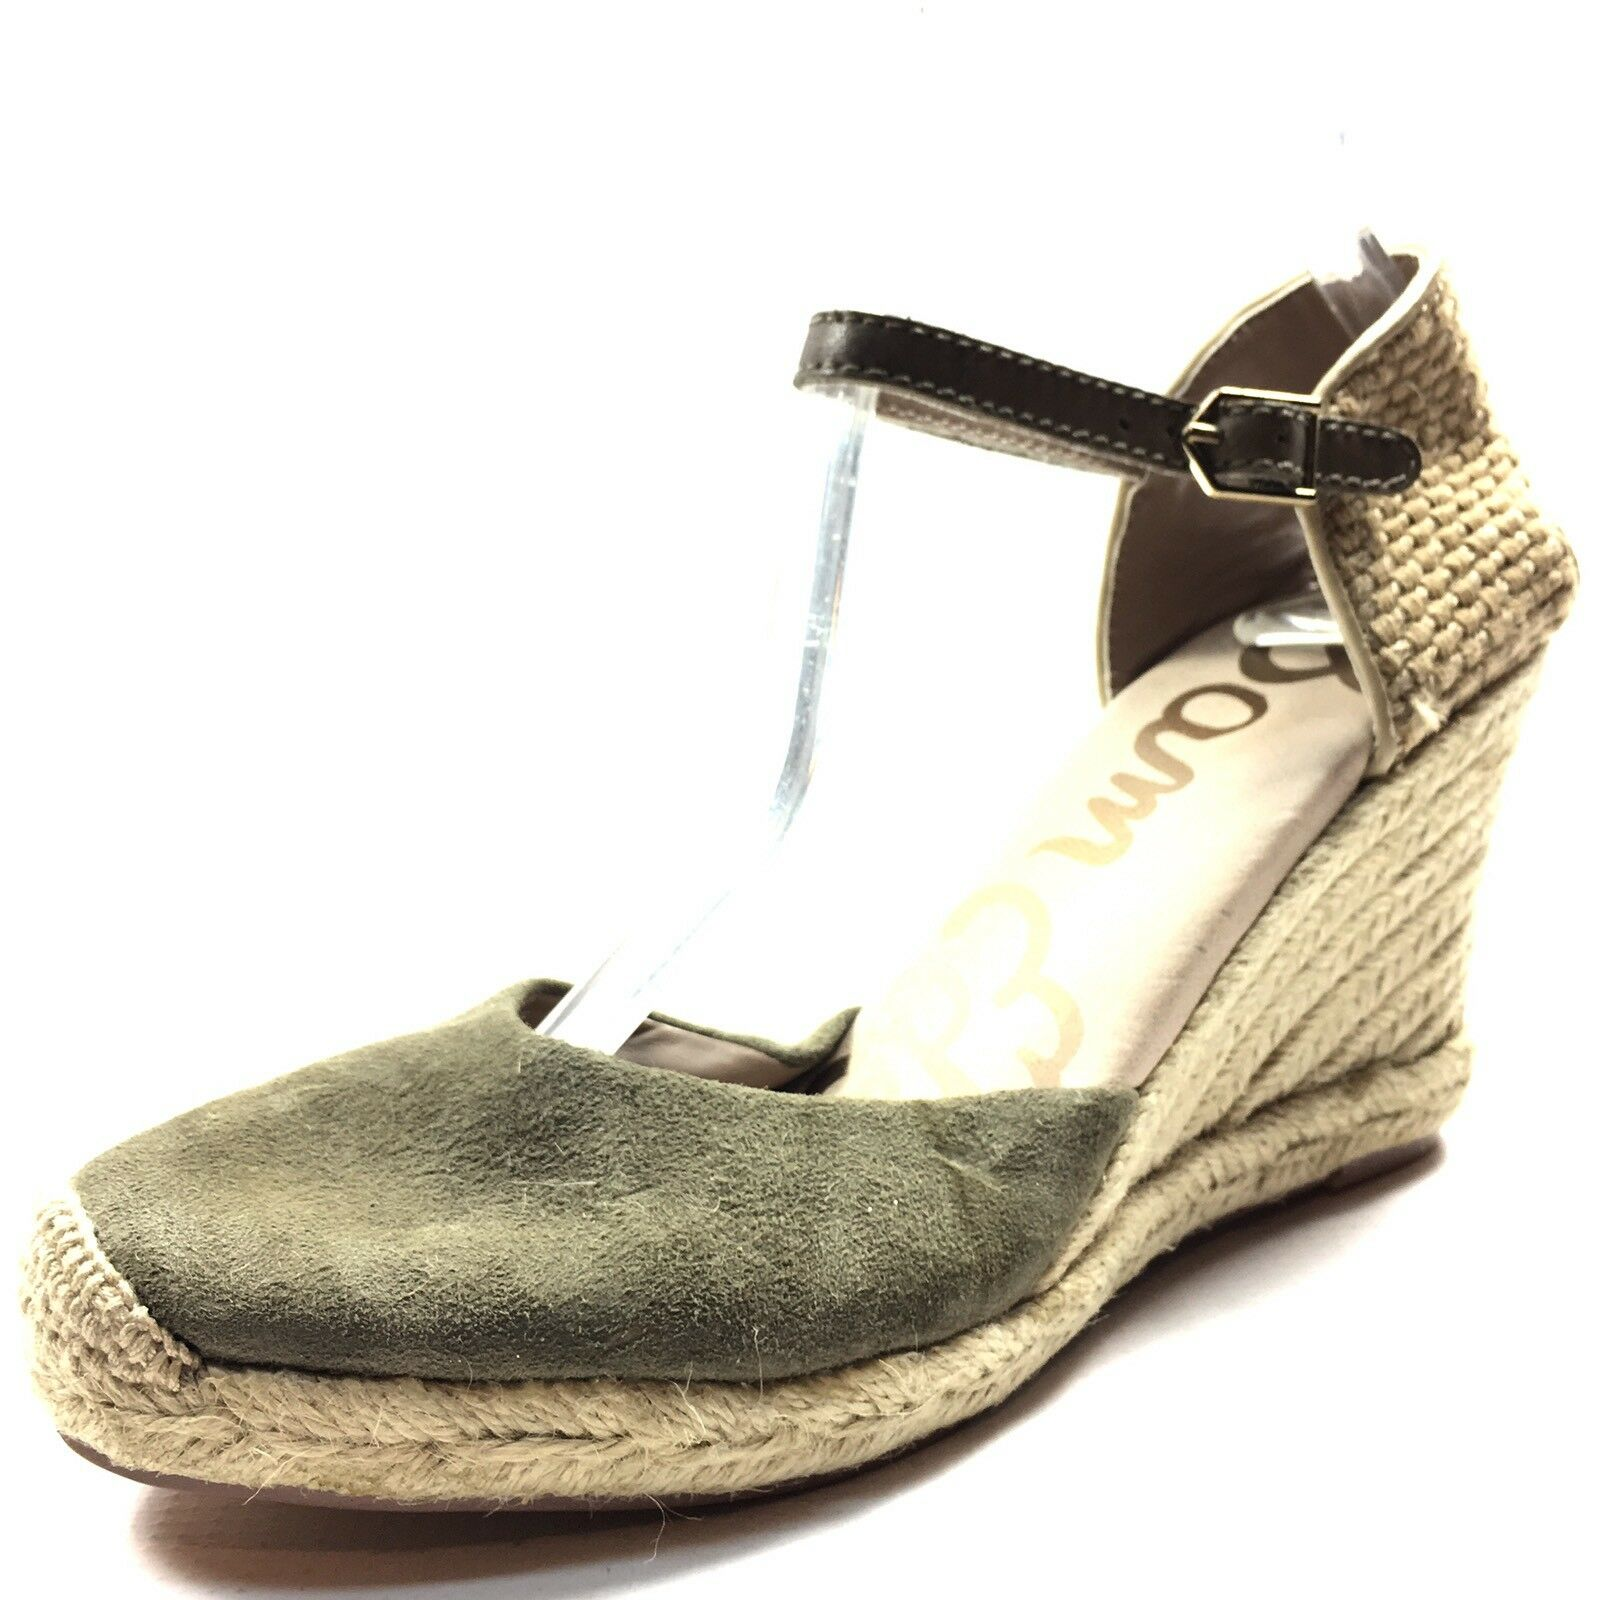 Sam Edelman Harmony Olive Suede Espadrille Ankle Strap Sandals Women's Size 7 M